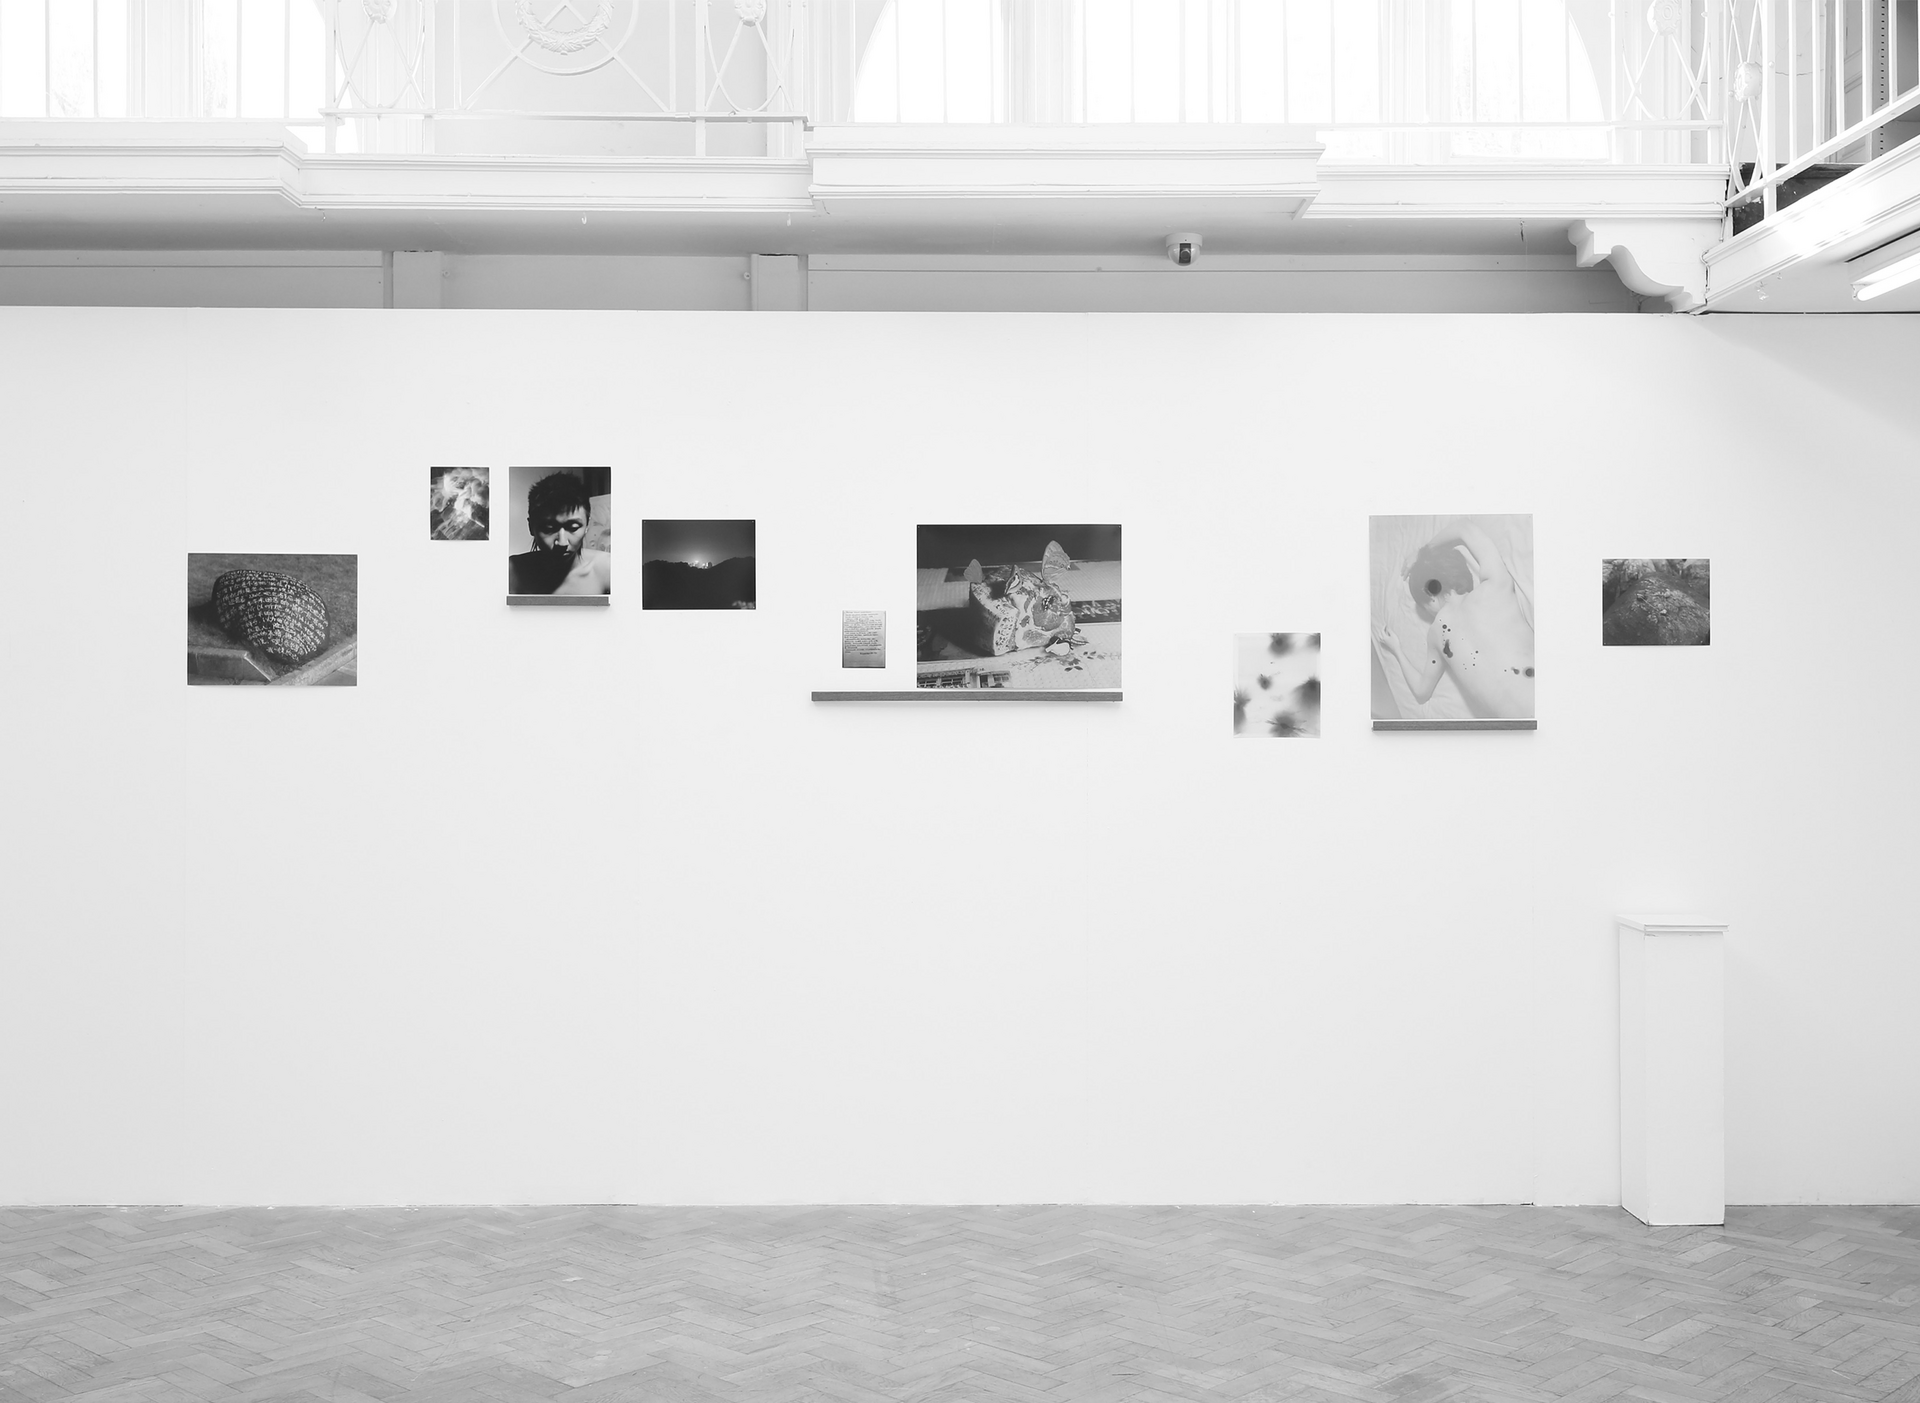 Selected works in the exhibition